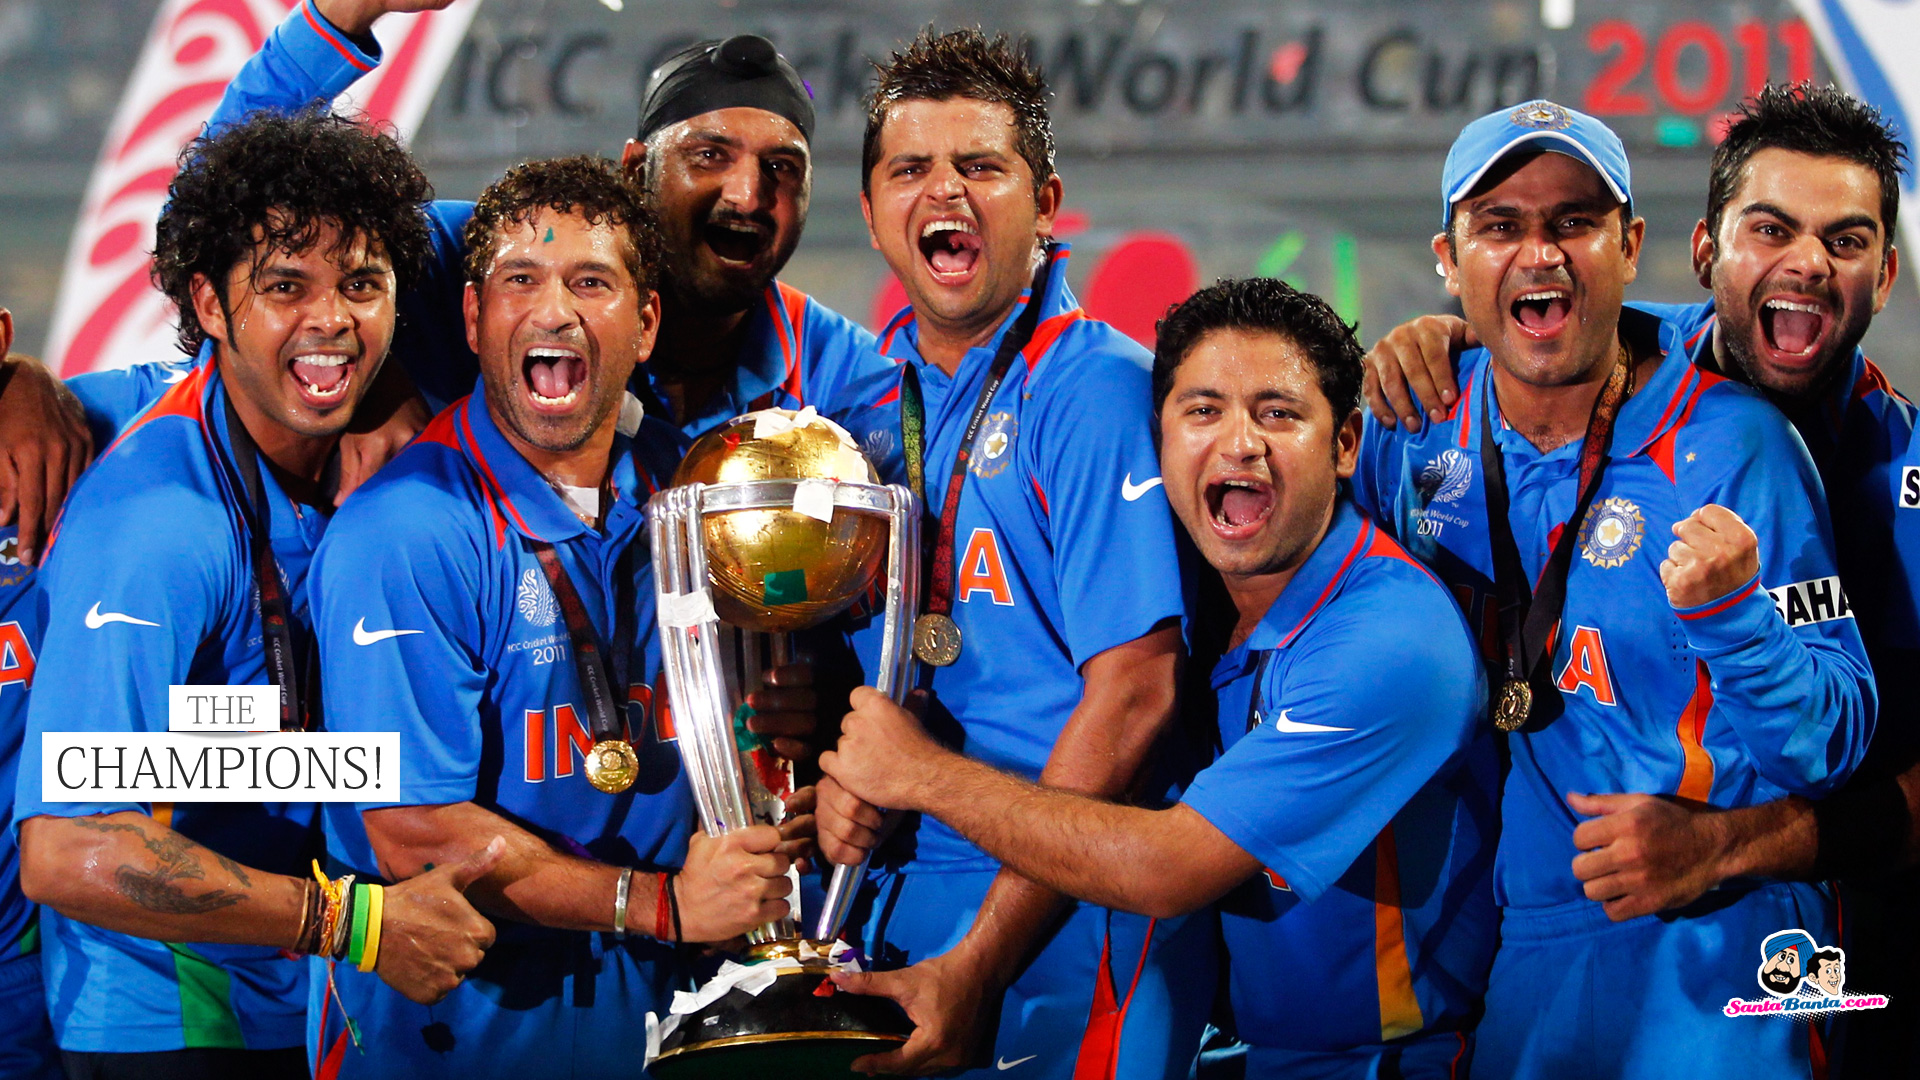 Team India 2011 World Cup 667.03 Kb